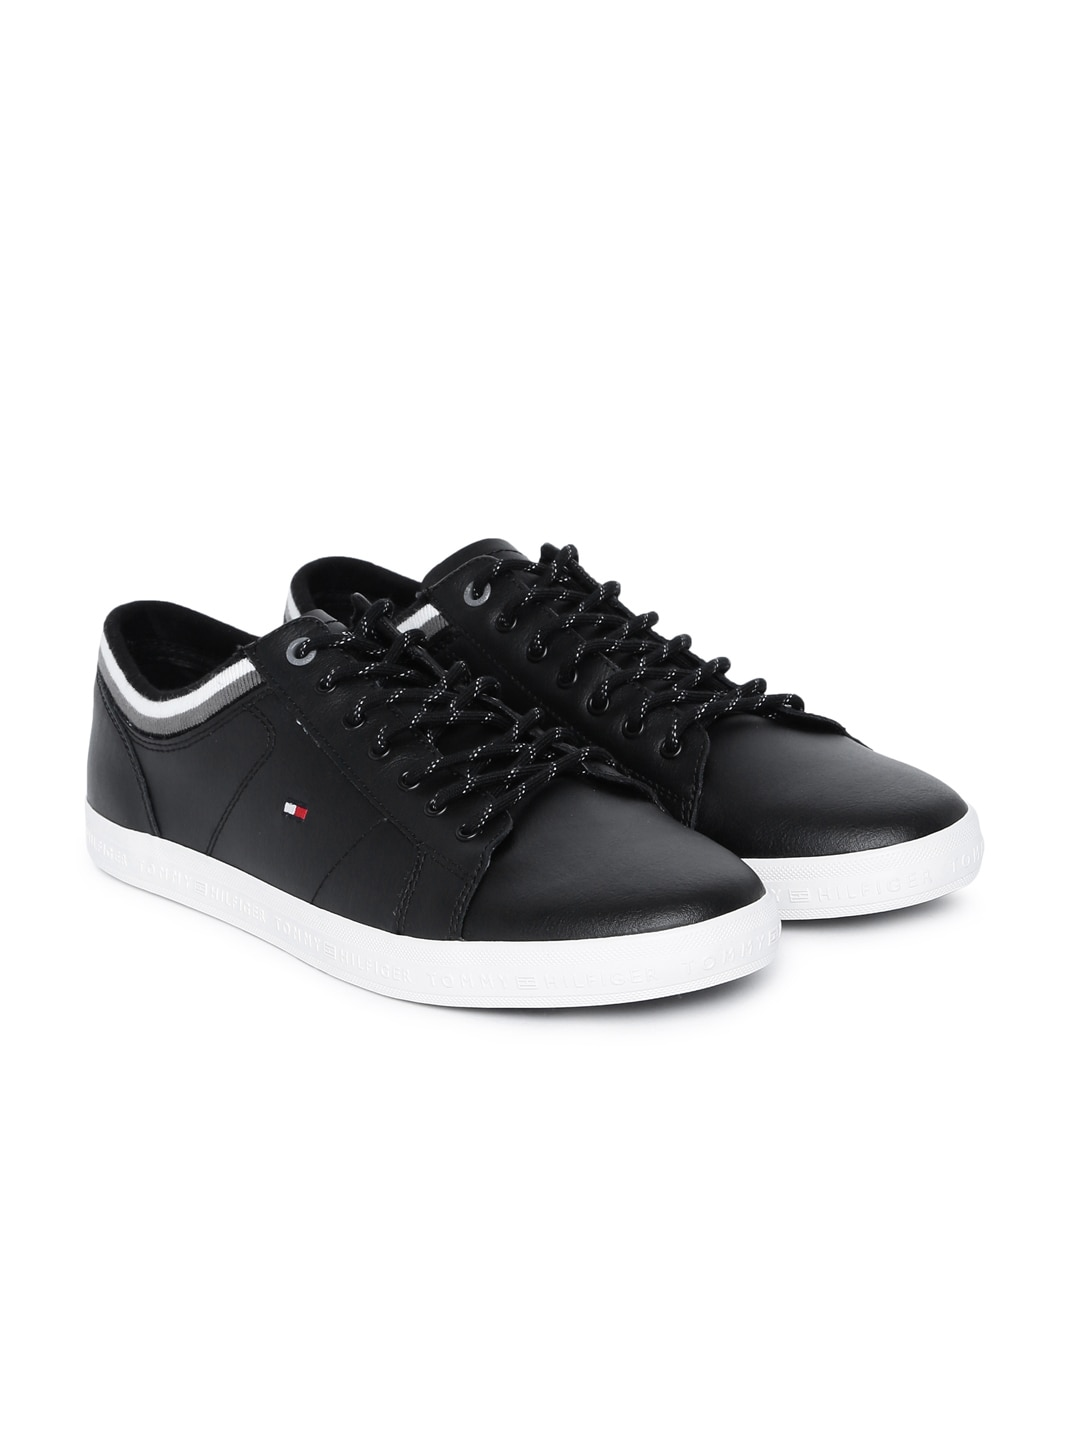 d728e0997 Tommy Hilfiger Footwear - Buy Tommy Hilfiger Footwear online in India